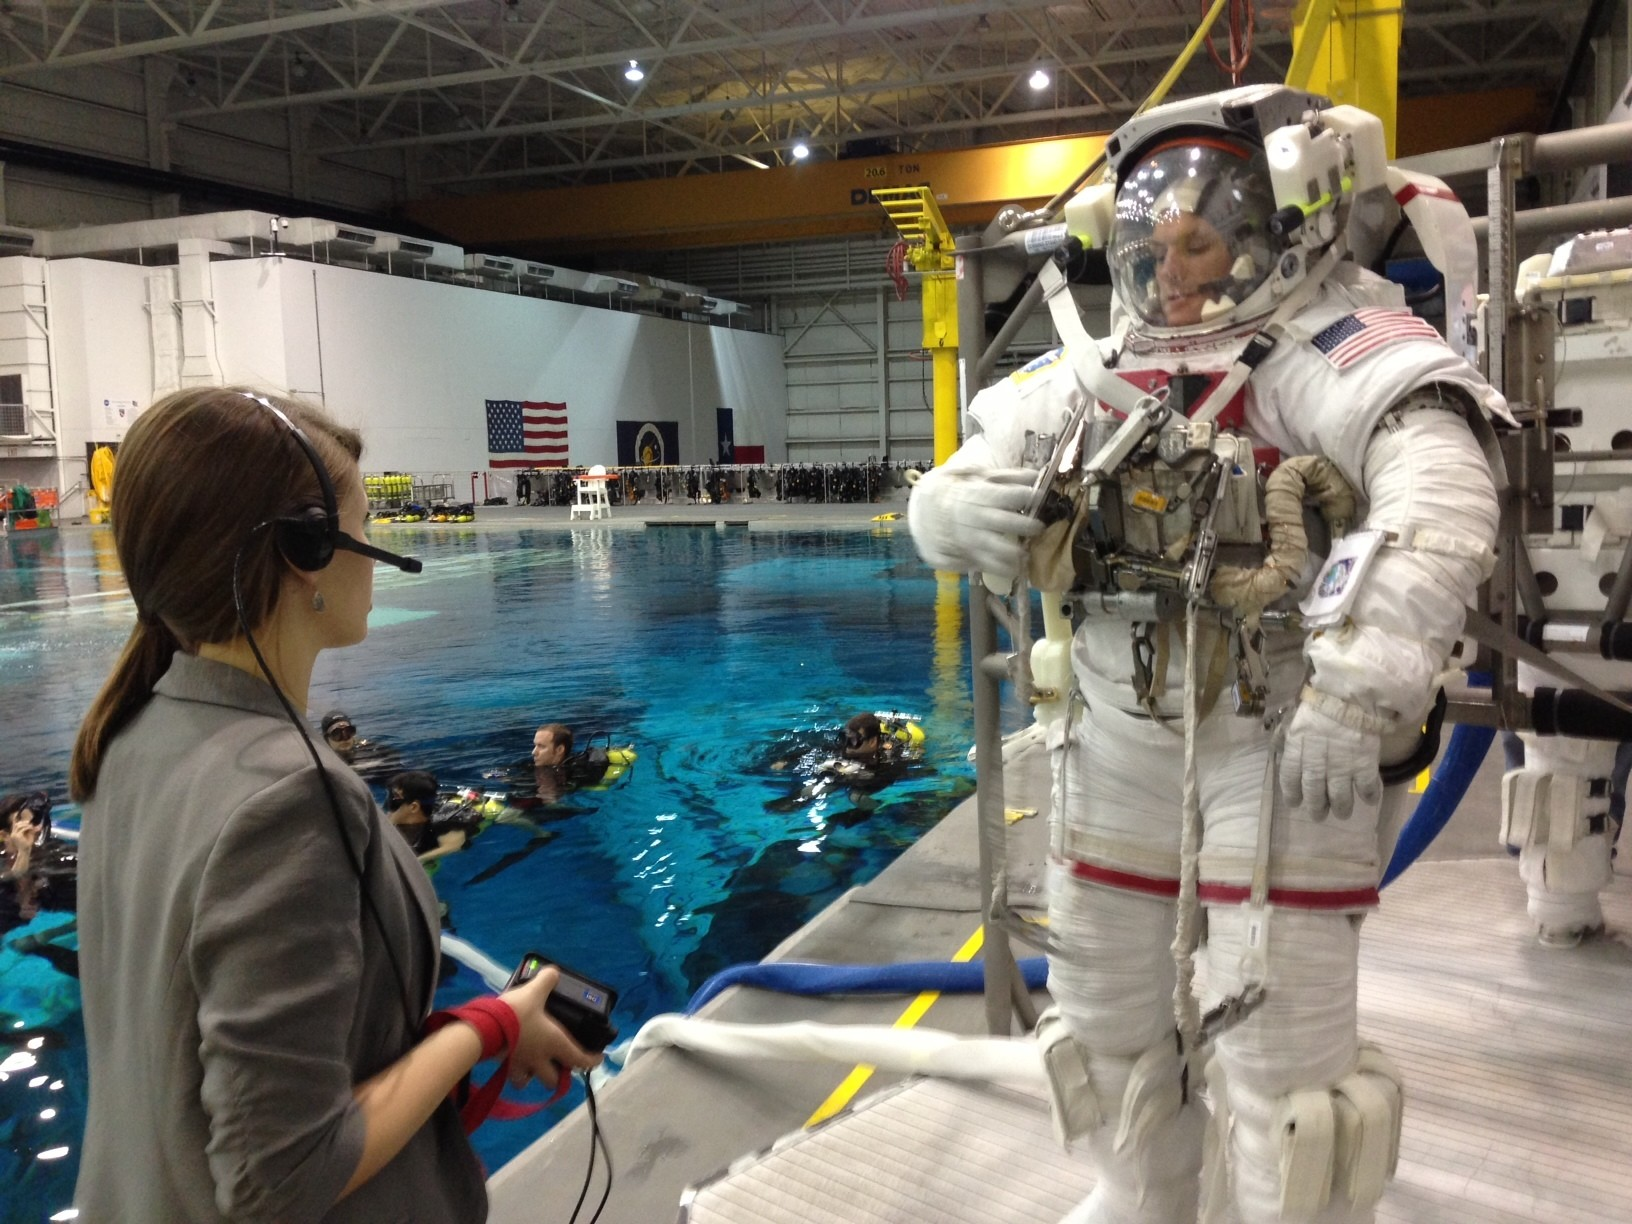 The author training astronauts at NASA's neutral buoyancy pool, which simulates the microgravity of space